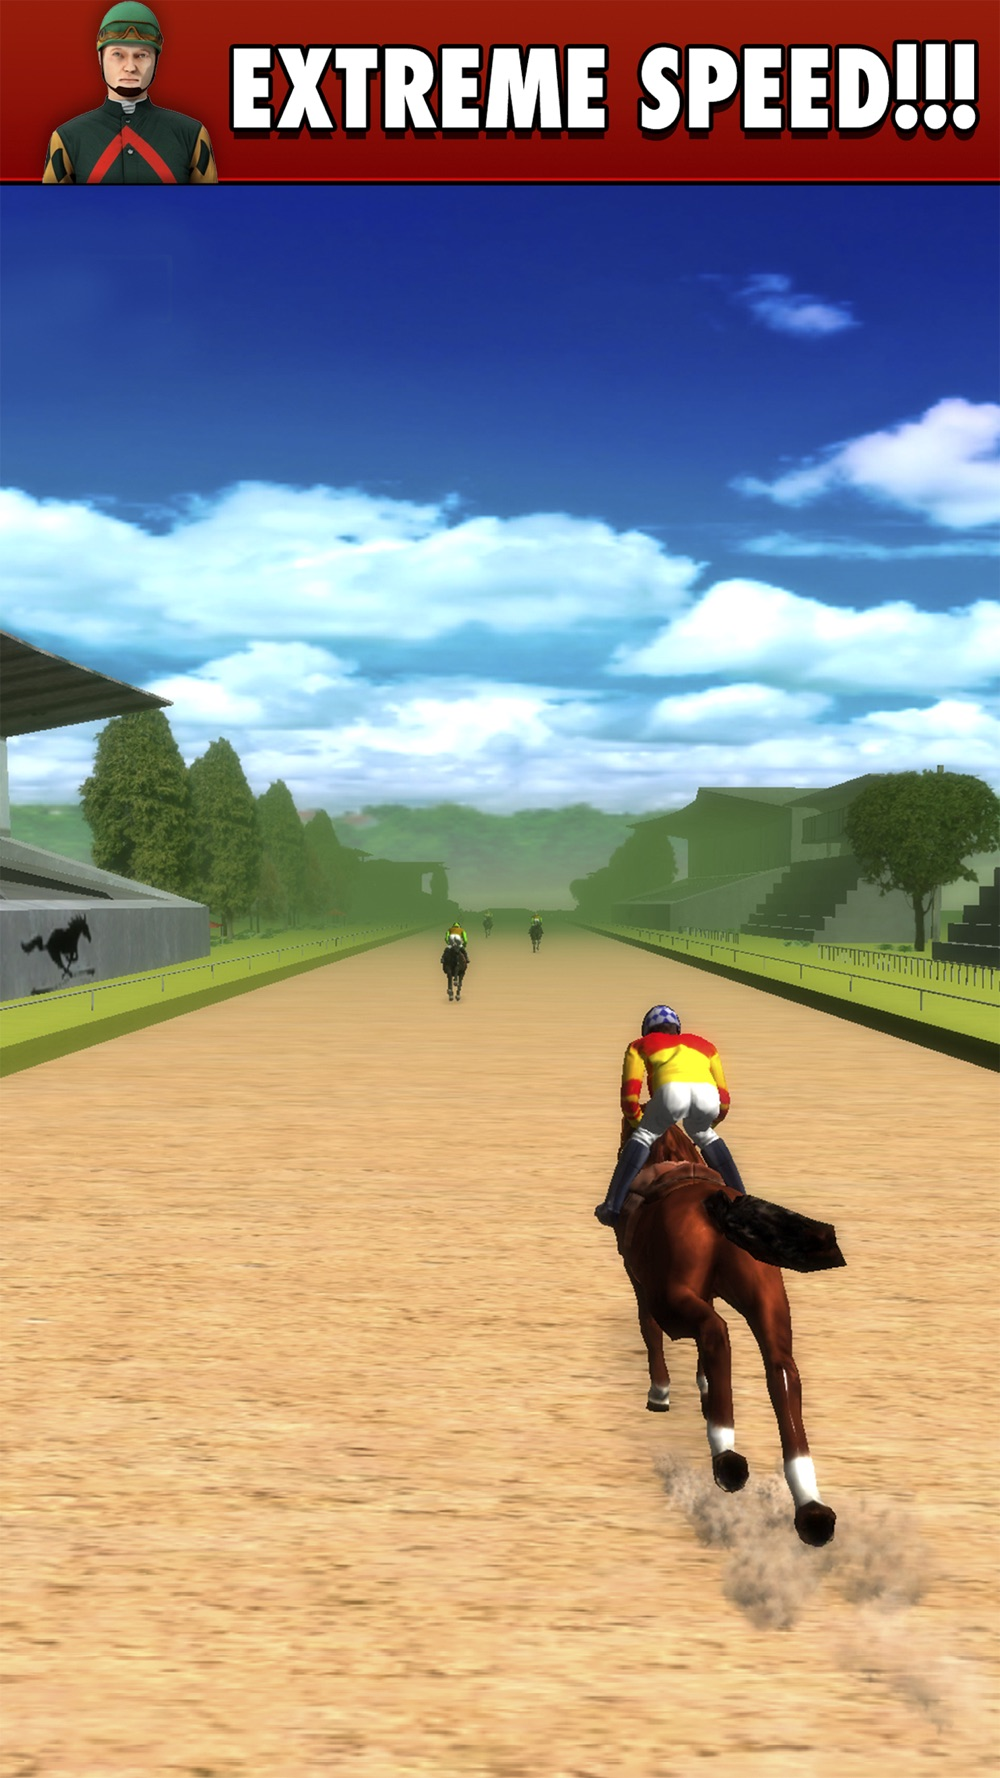 Hack tool for Champions Riding Trails 3D: My Free Racing Horse Derby Game